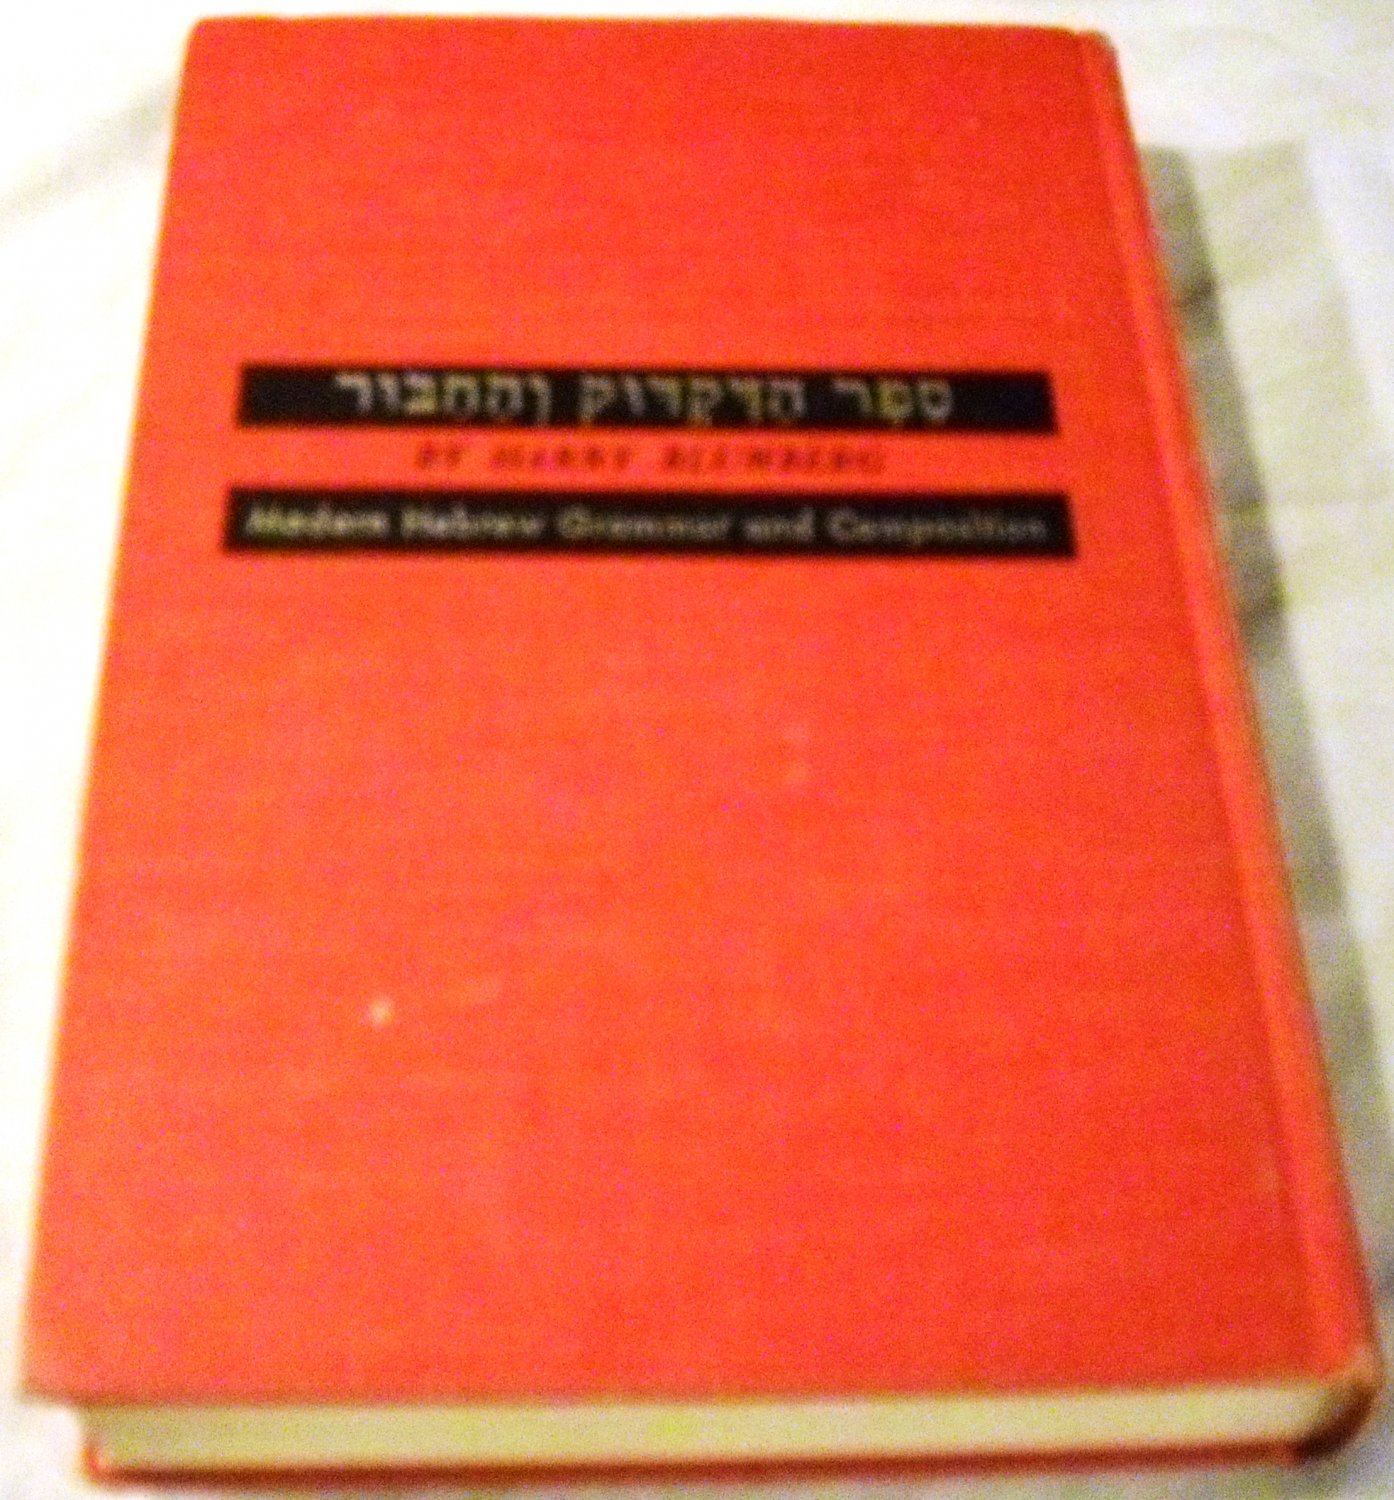 MODERN HEBREW GRAMMAR AND COMPOSITION. by Harry. Blumberg (1959)